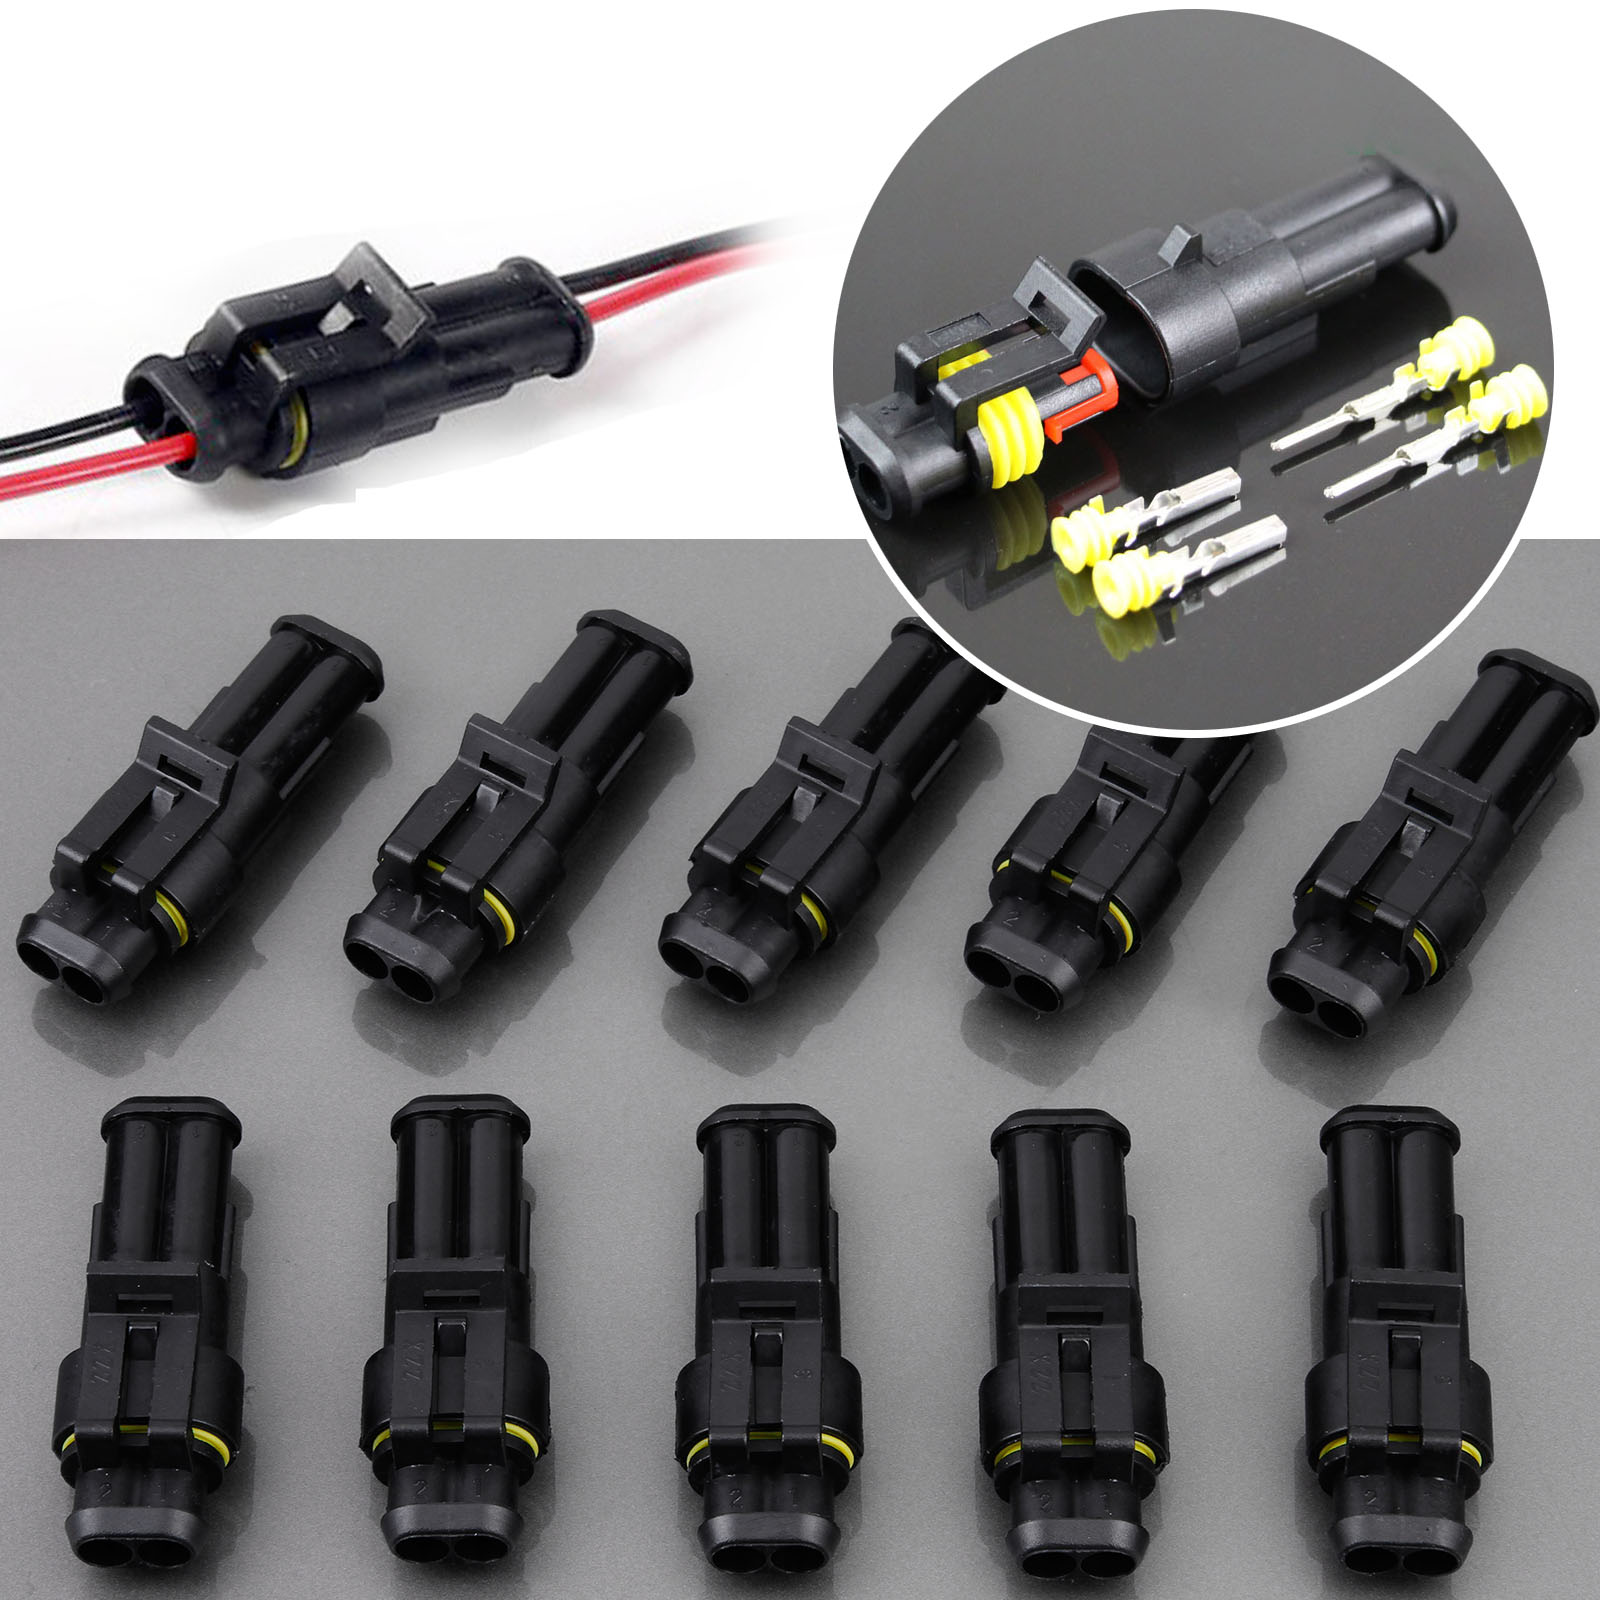 10x 2 polig superseal kfz stecker set steckverbindung auto wasserdicht ebay. Black Bedroom Furniture Sets. Home Design Ideas